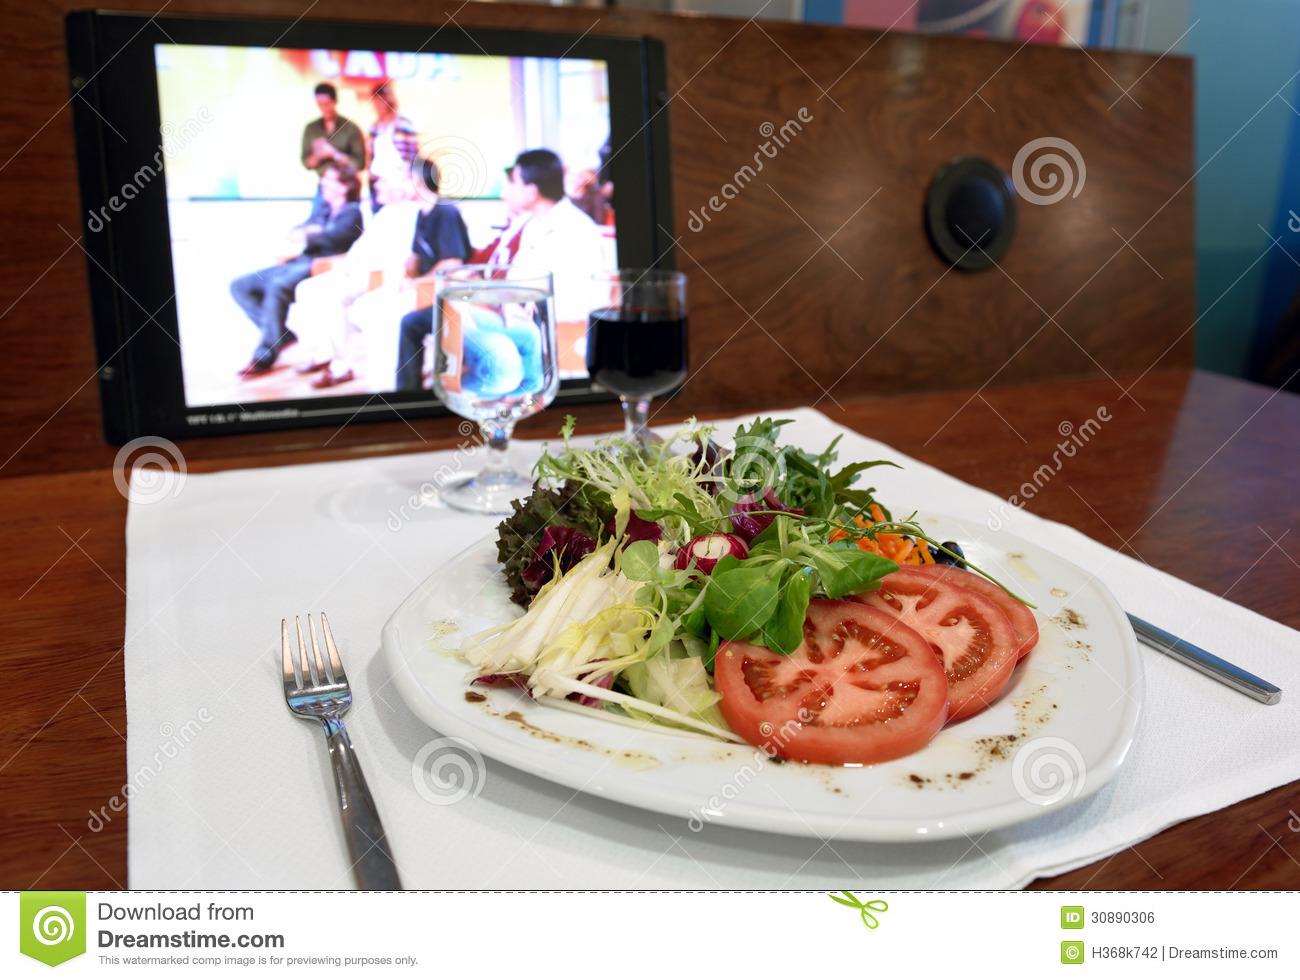 Lunch Break Healthy Food Stock Photo Image Of Meal 30890306